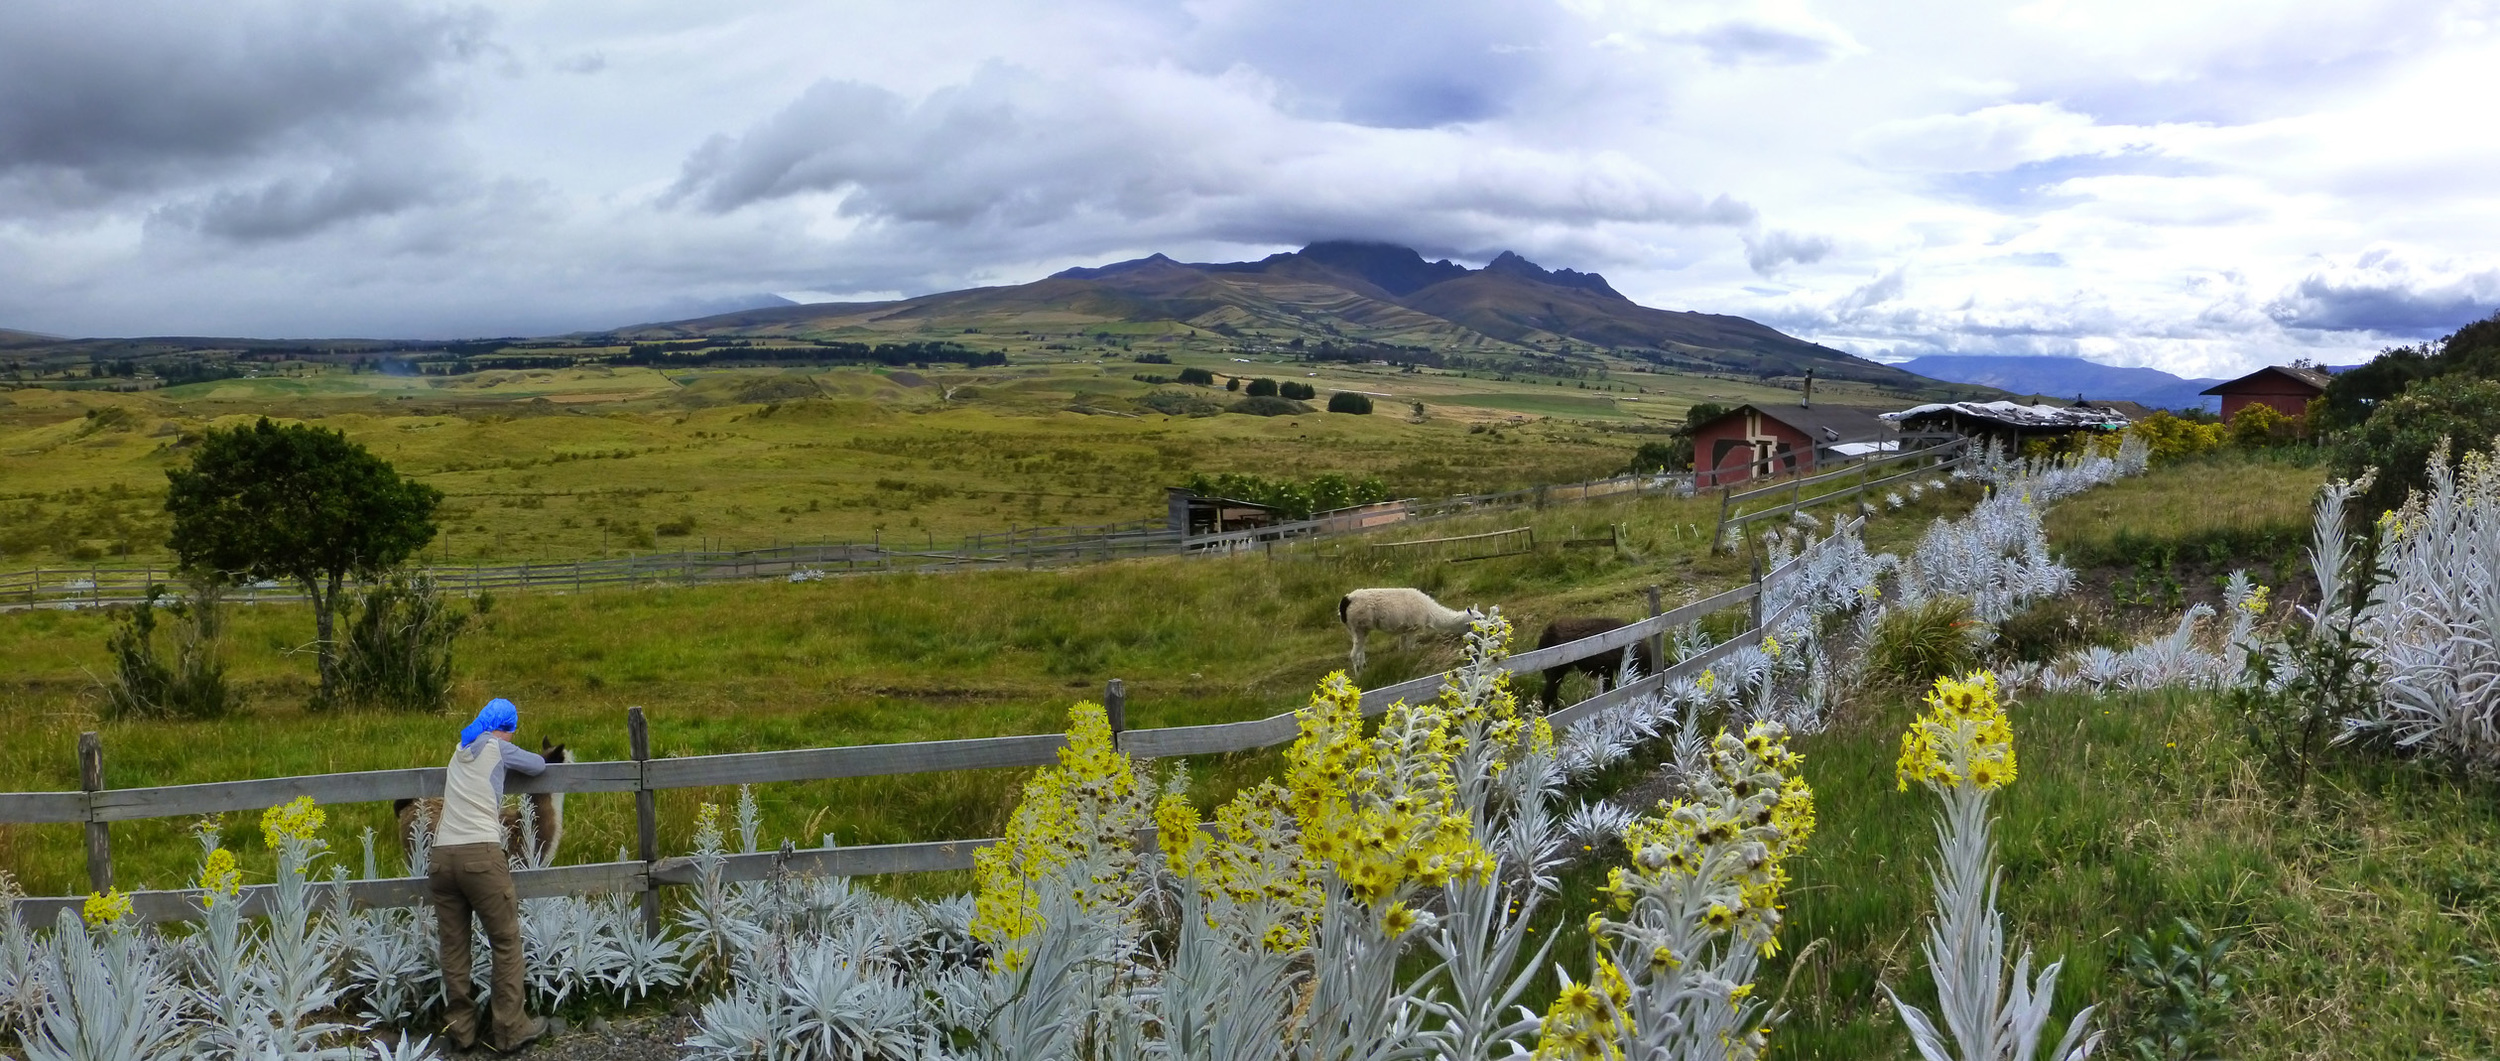 The Secret Garden. Here you can see the sprawling view, the quaint grounds, and some of the animals - which I was happy to spend time with. Sadly, Cotopaxi is shrouded by cloud at the moment.